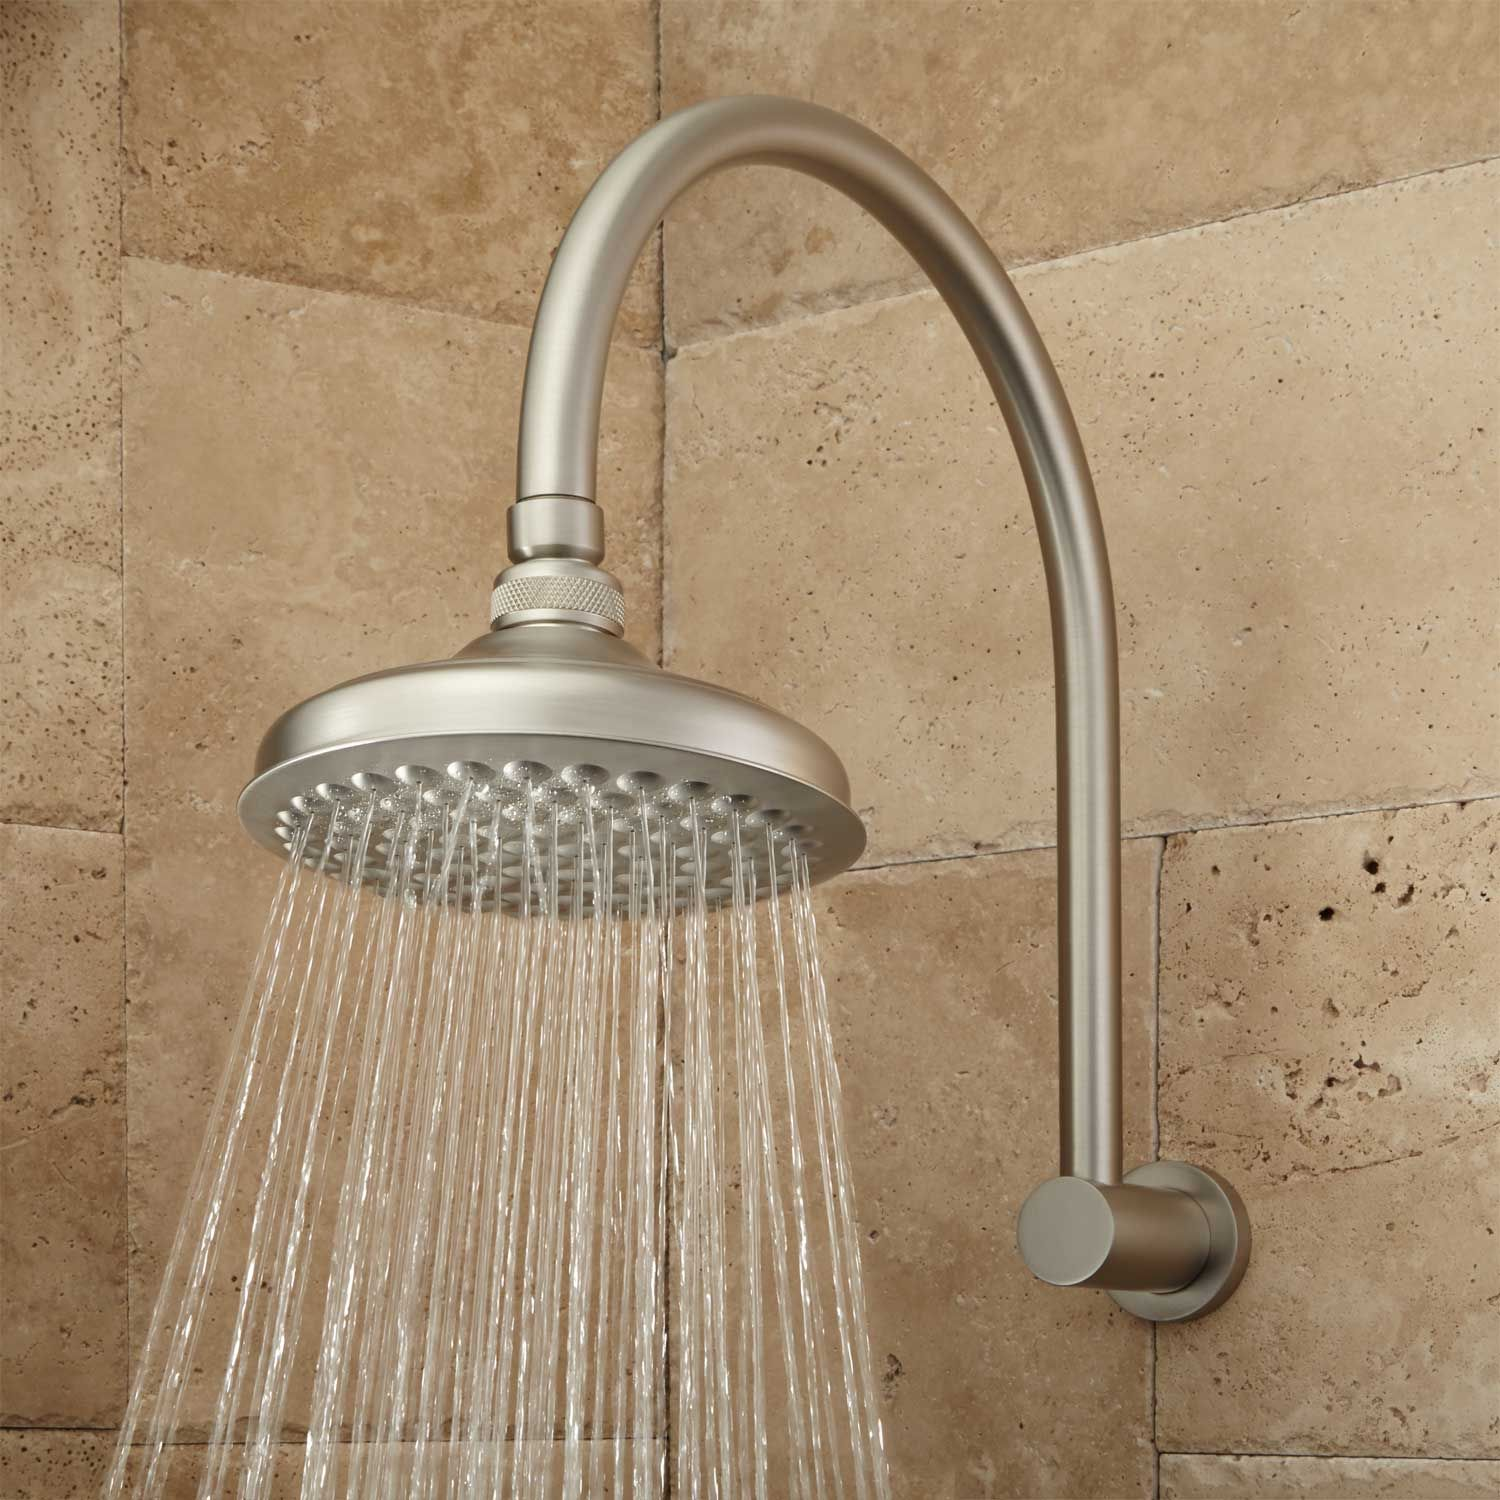 Roux Rainfall Shower Head With Modern Arm In Brushed Nickel